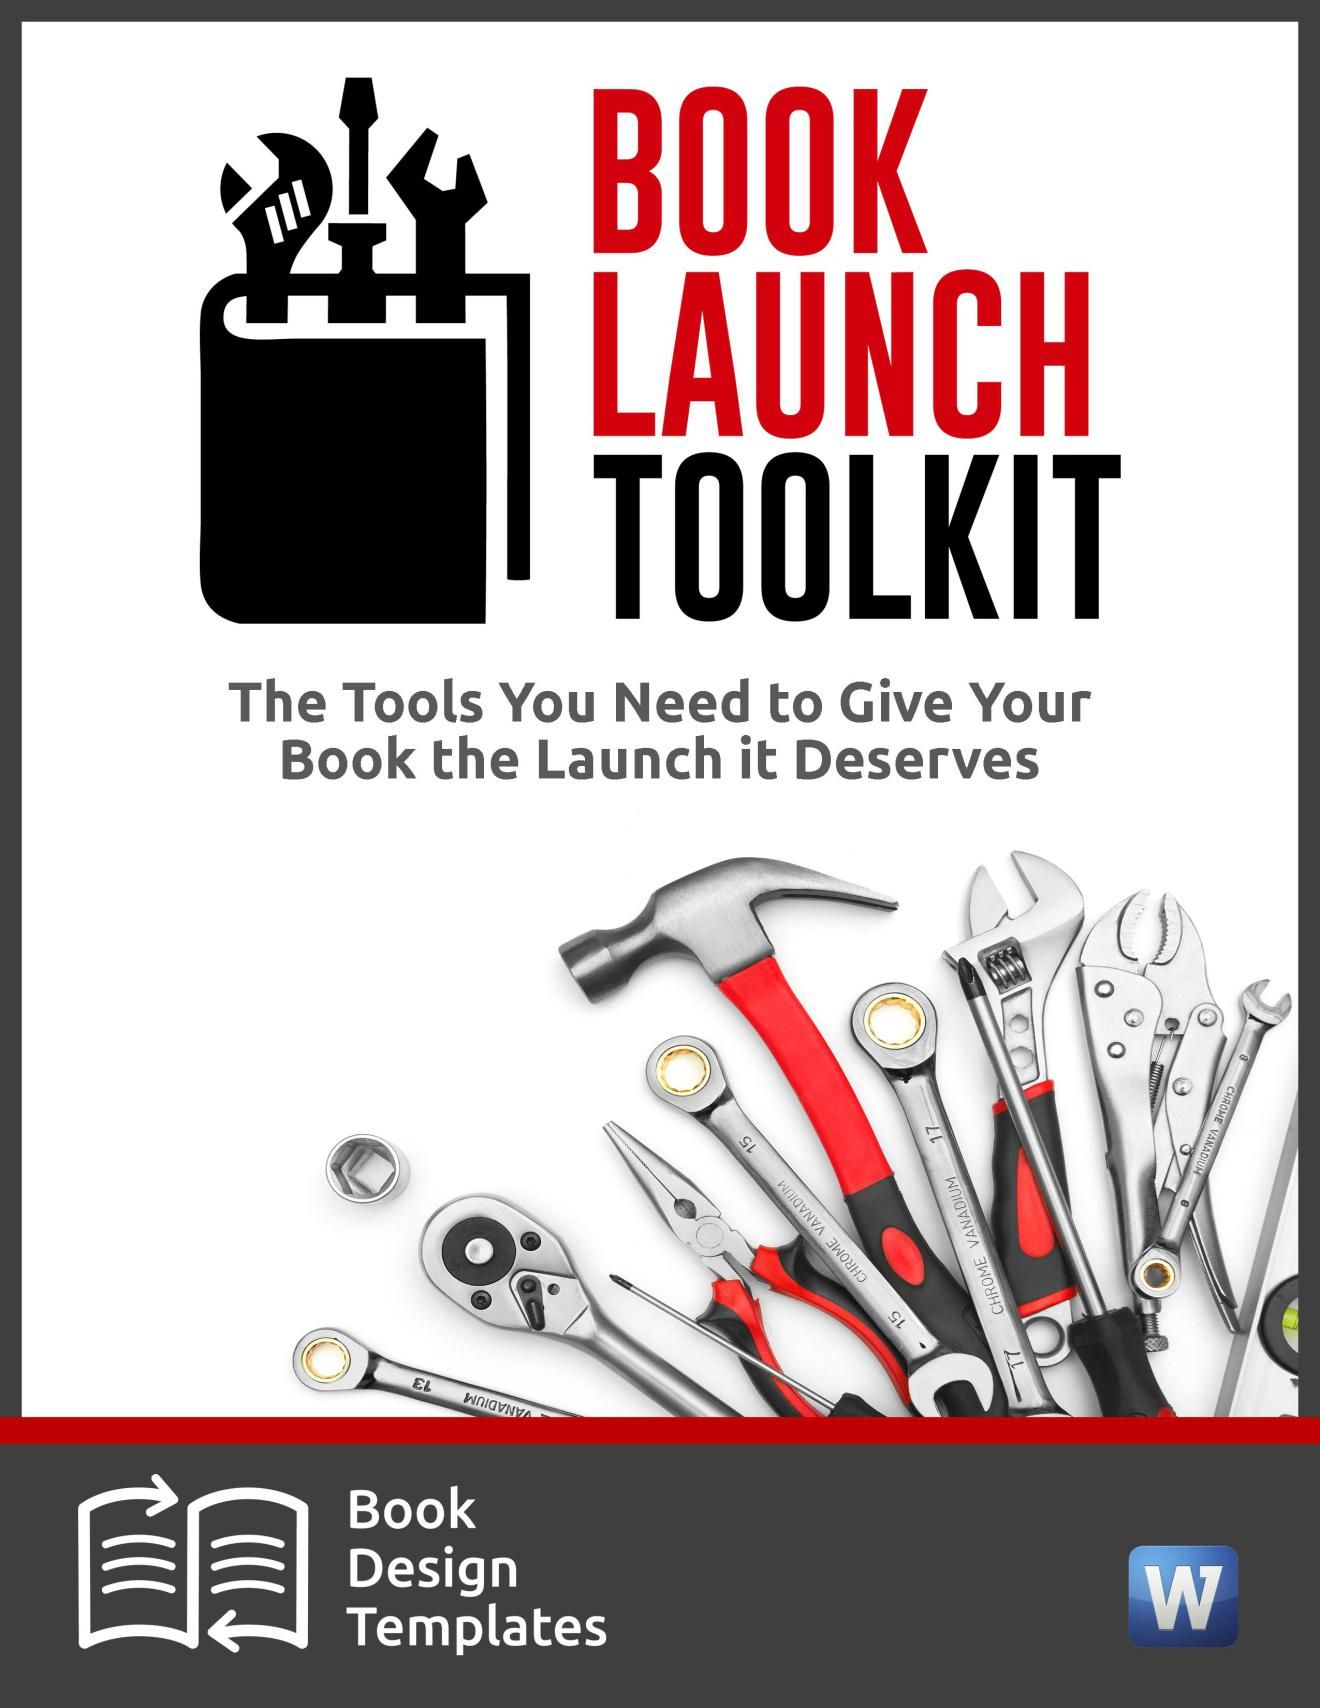 Book Launch Toolkit Author Toolkits